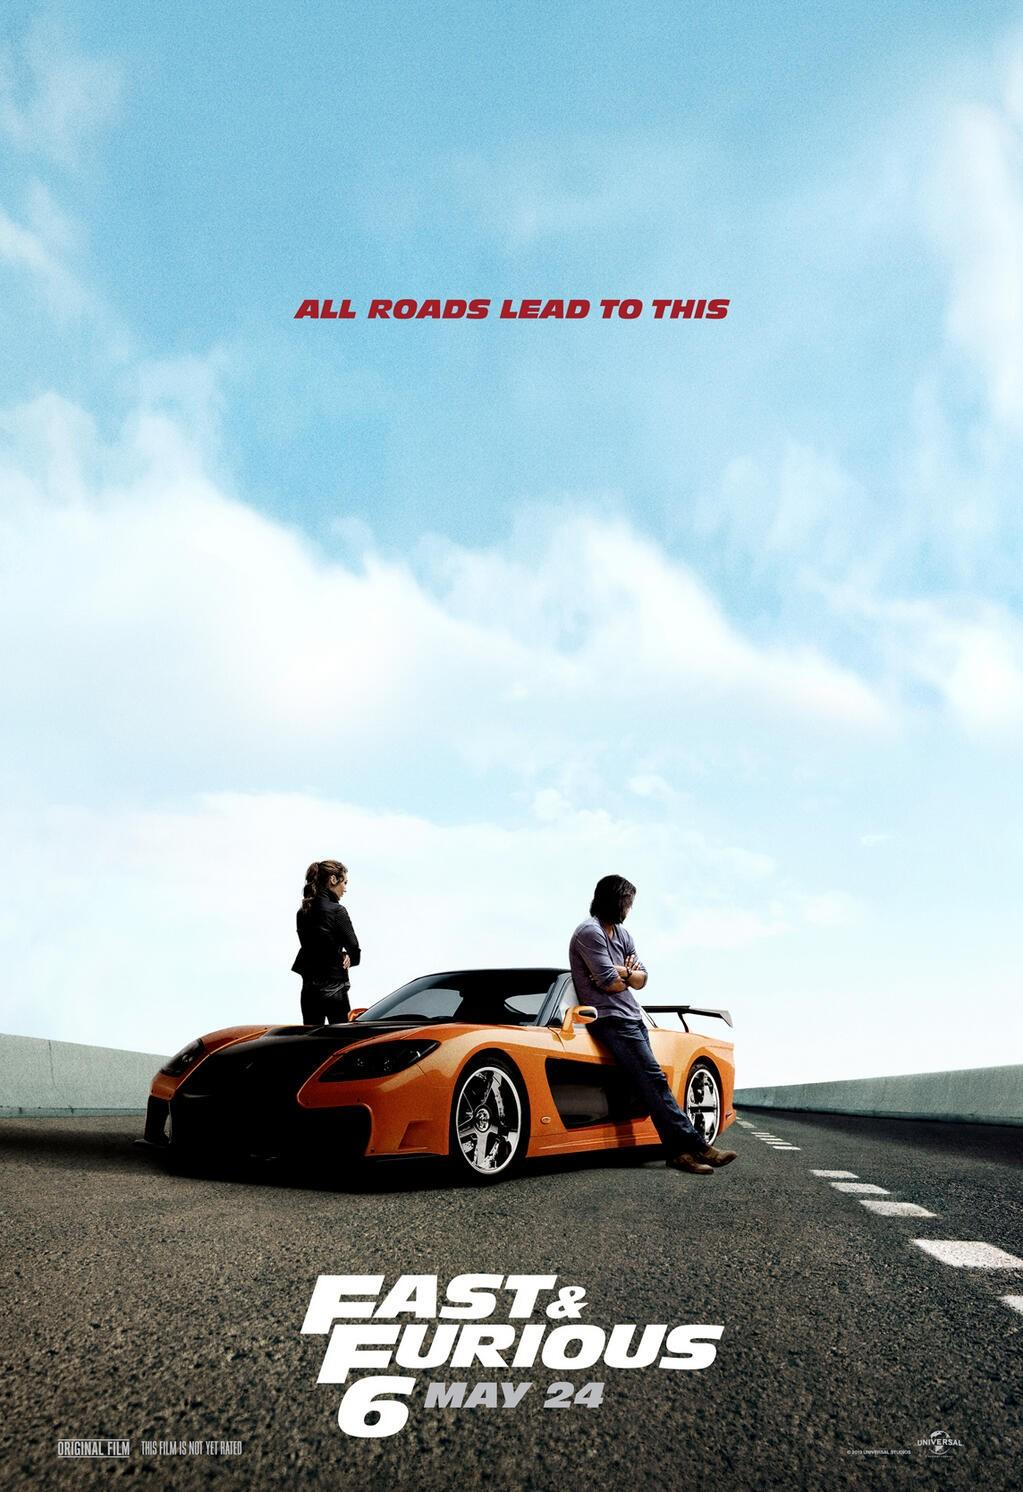 Fast%20and%20Furious%206%202013.3 1 دانلود فیلم Fast and Furious 6 2013